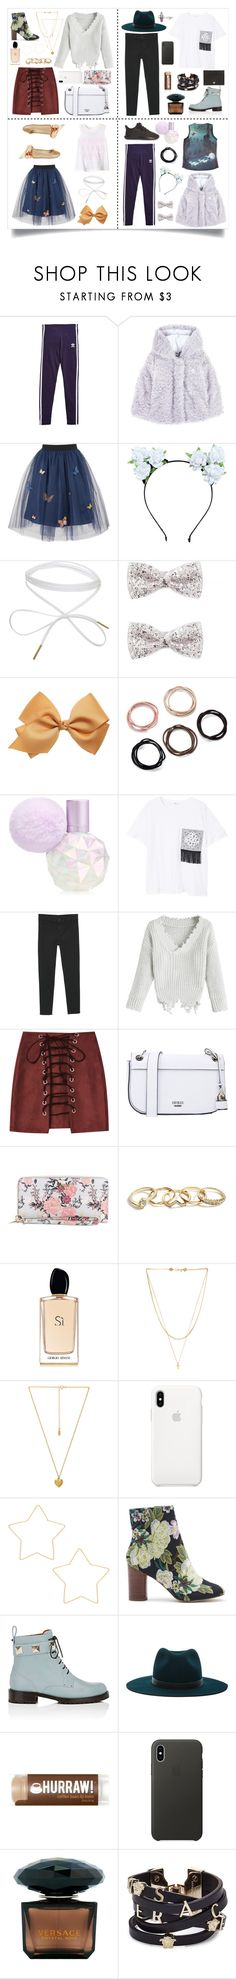 """""""The Whole Damn Family ✌️🌈"""" by littlewhitedaisy ❤ liked on Polyvore featuring Disney, adidas Originals, George J. Love, Spiritual Gangster, Forever 21, MANGO, GUESS, Giorgio Armani, Vanessa Mooney and Natalie B"""